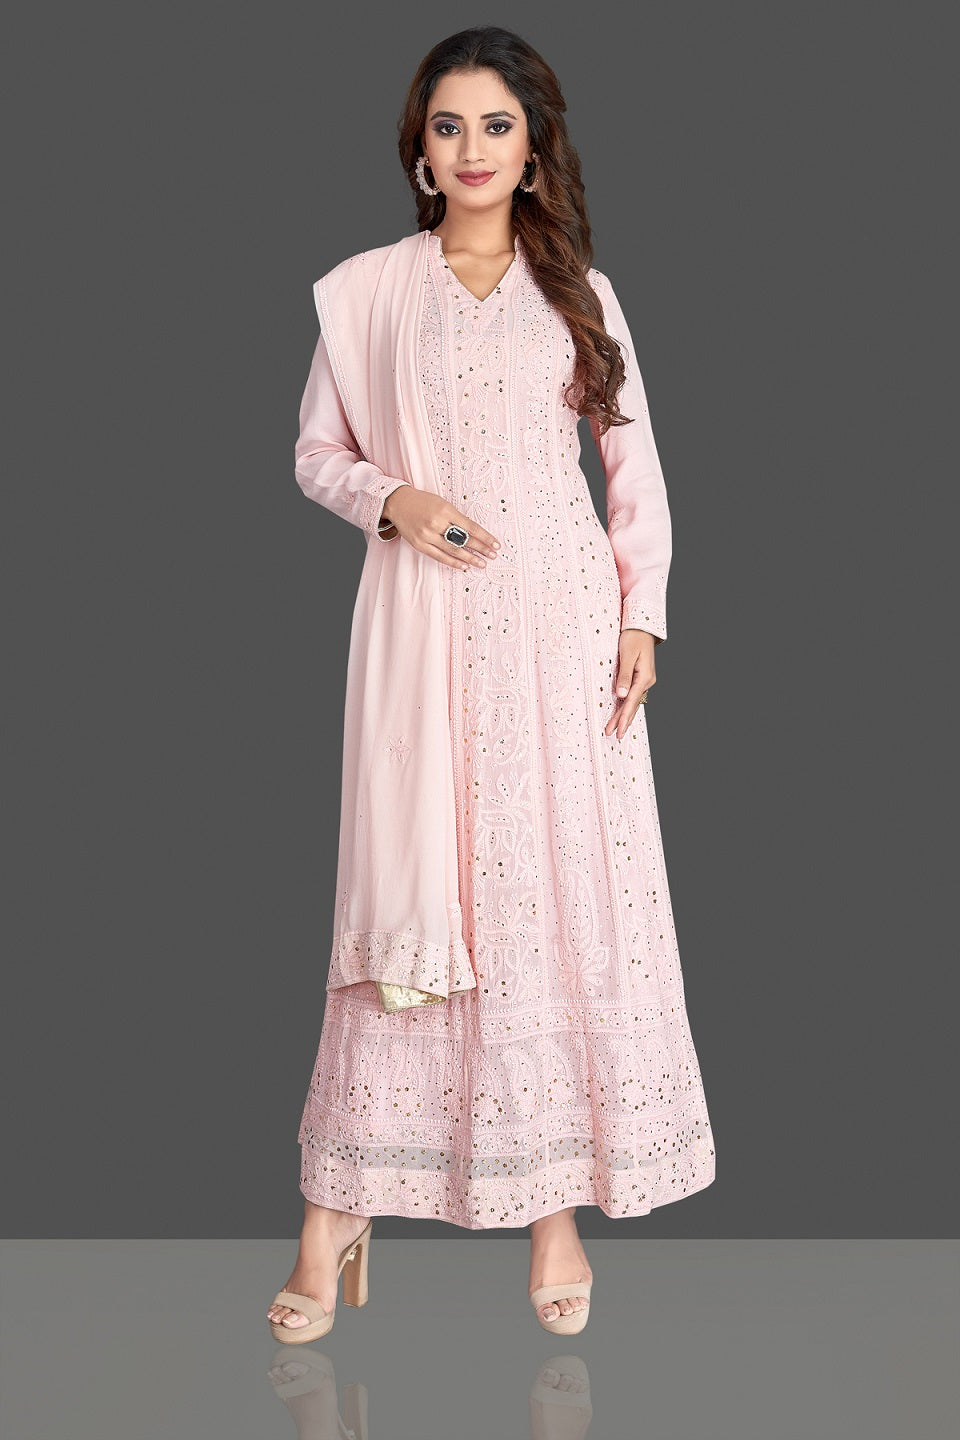 Shop beautiful powder pink Lucknowi chikankari work georgette Anarkali suit online in USA. Flaunt your sartorial choice with beautiful embroidered Anarkali, sharara suits, designer lehengas, designer gowns from Pure Elegance Indian saree store in USA.-full view\